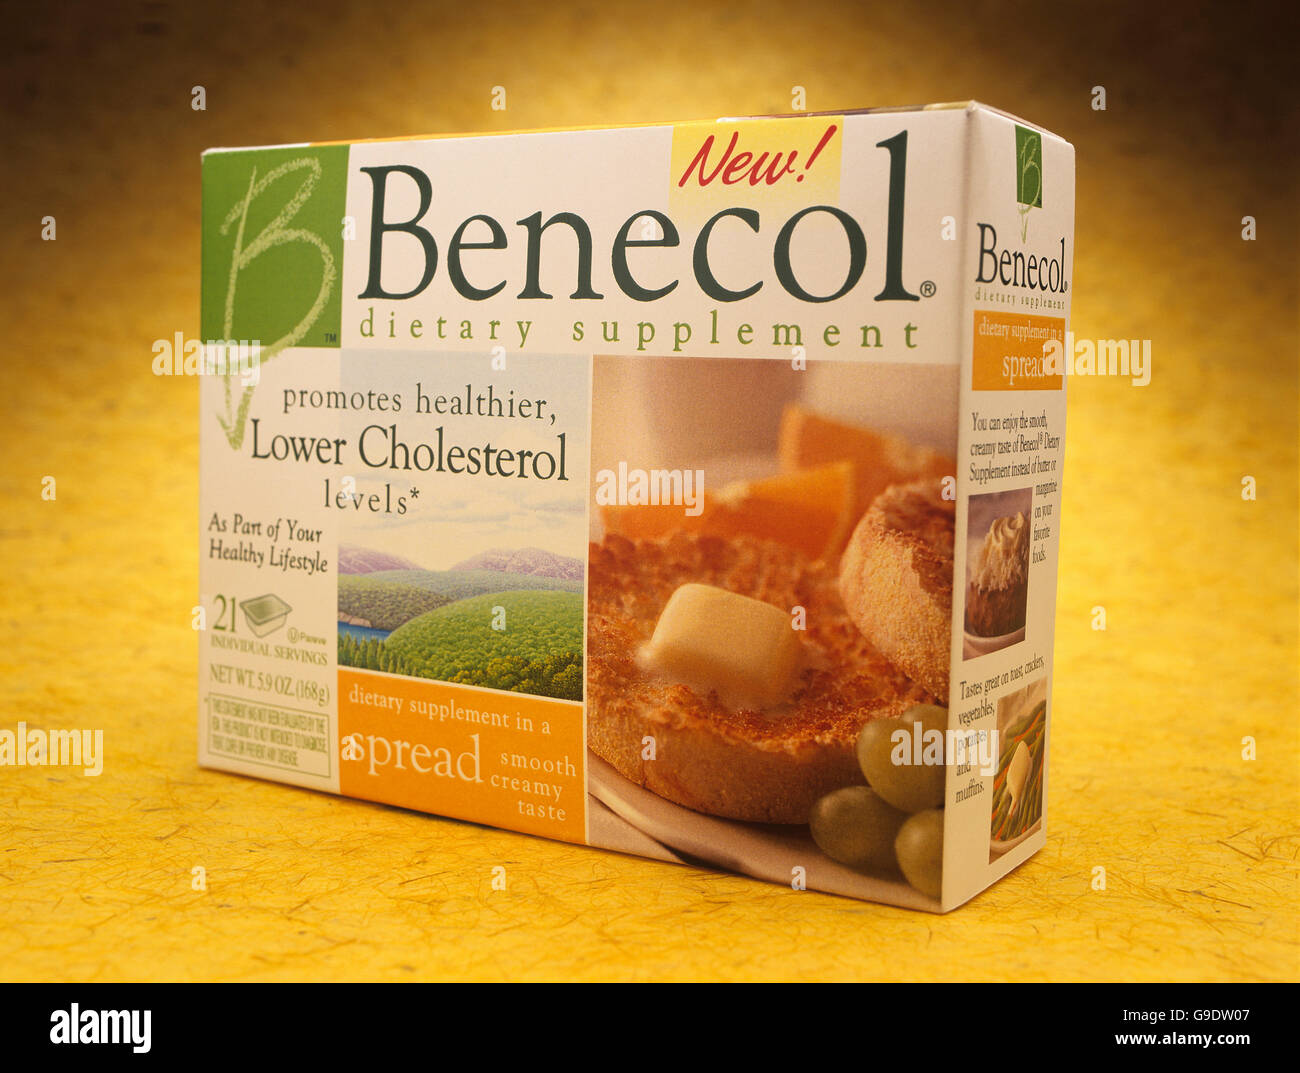 Benecol butter substitute - Stock Image